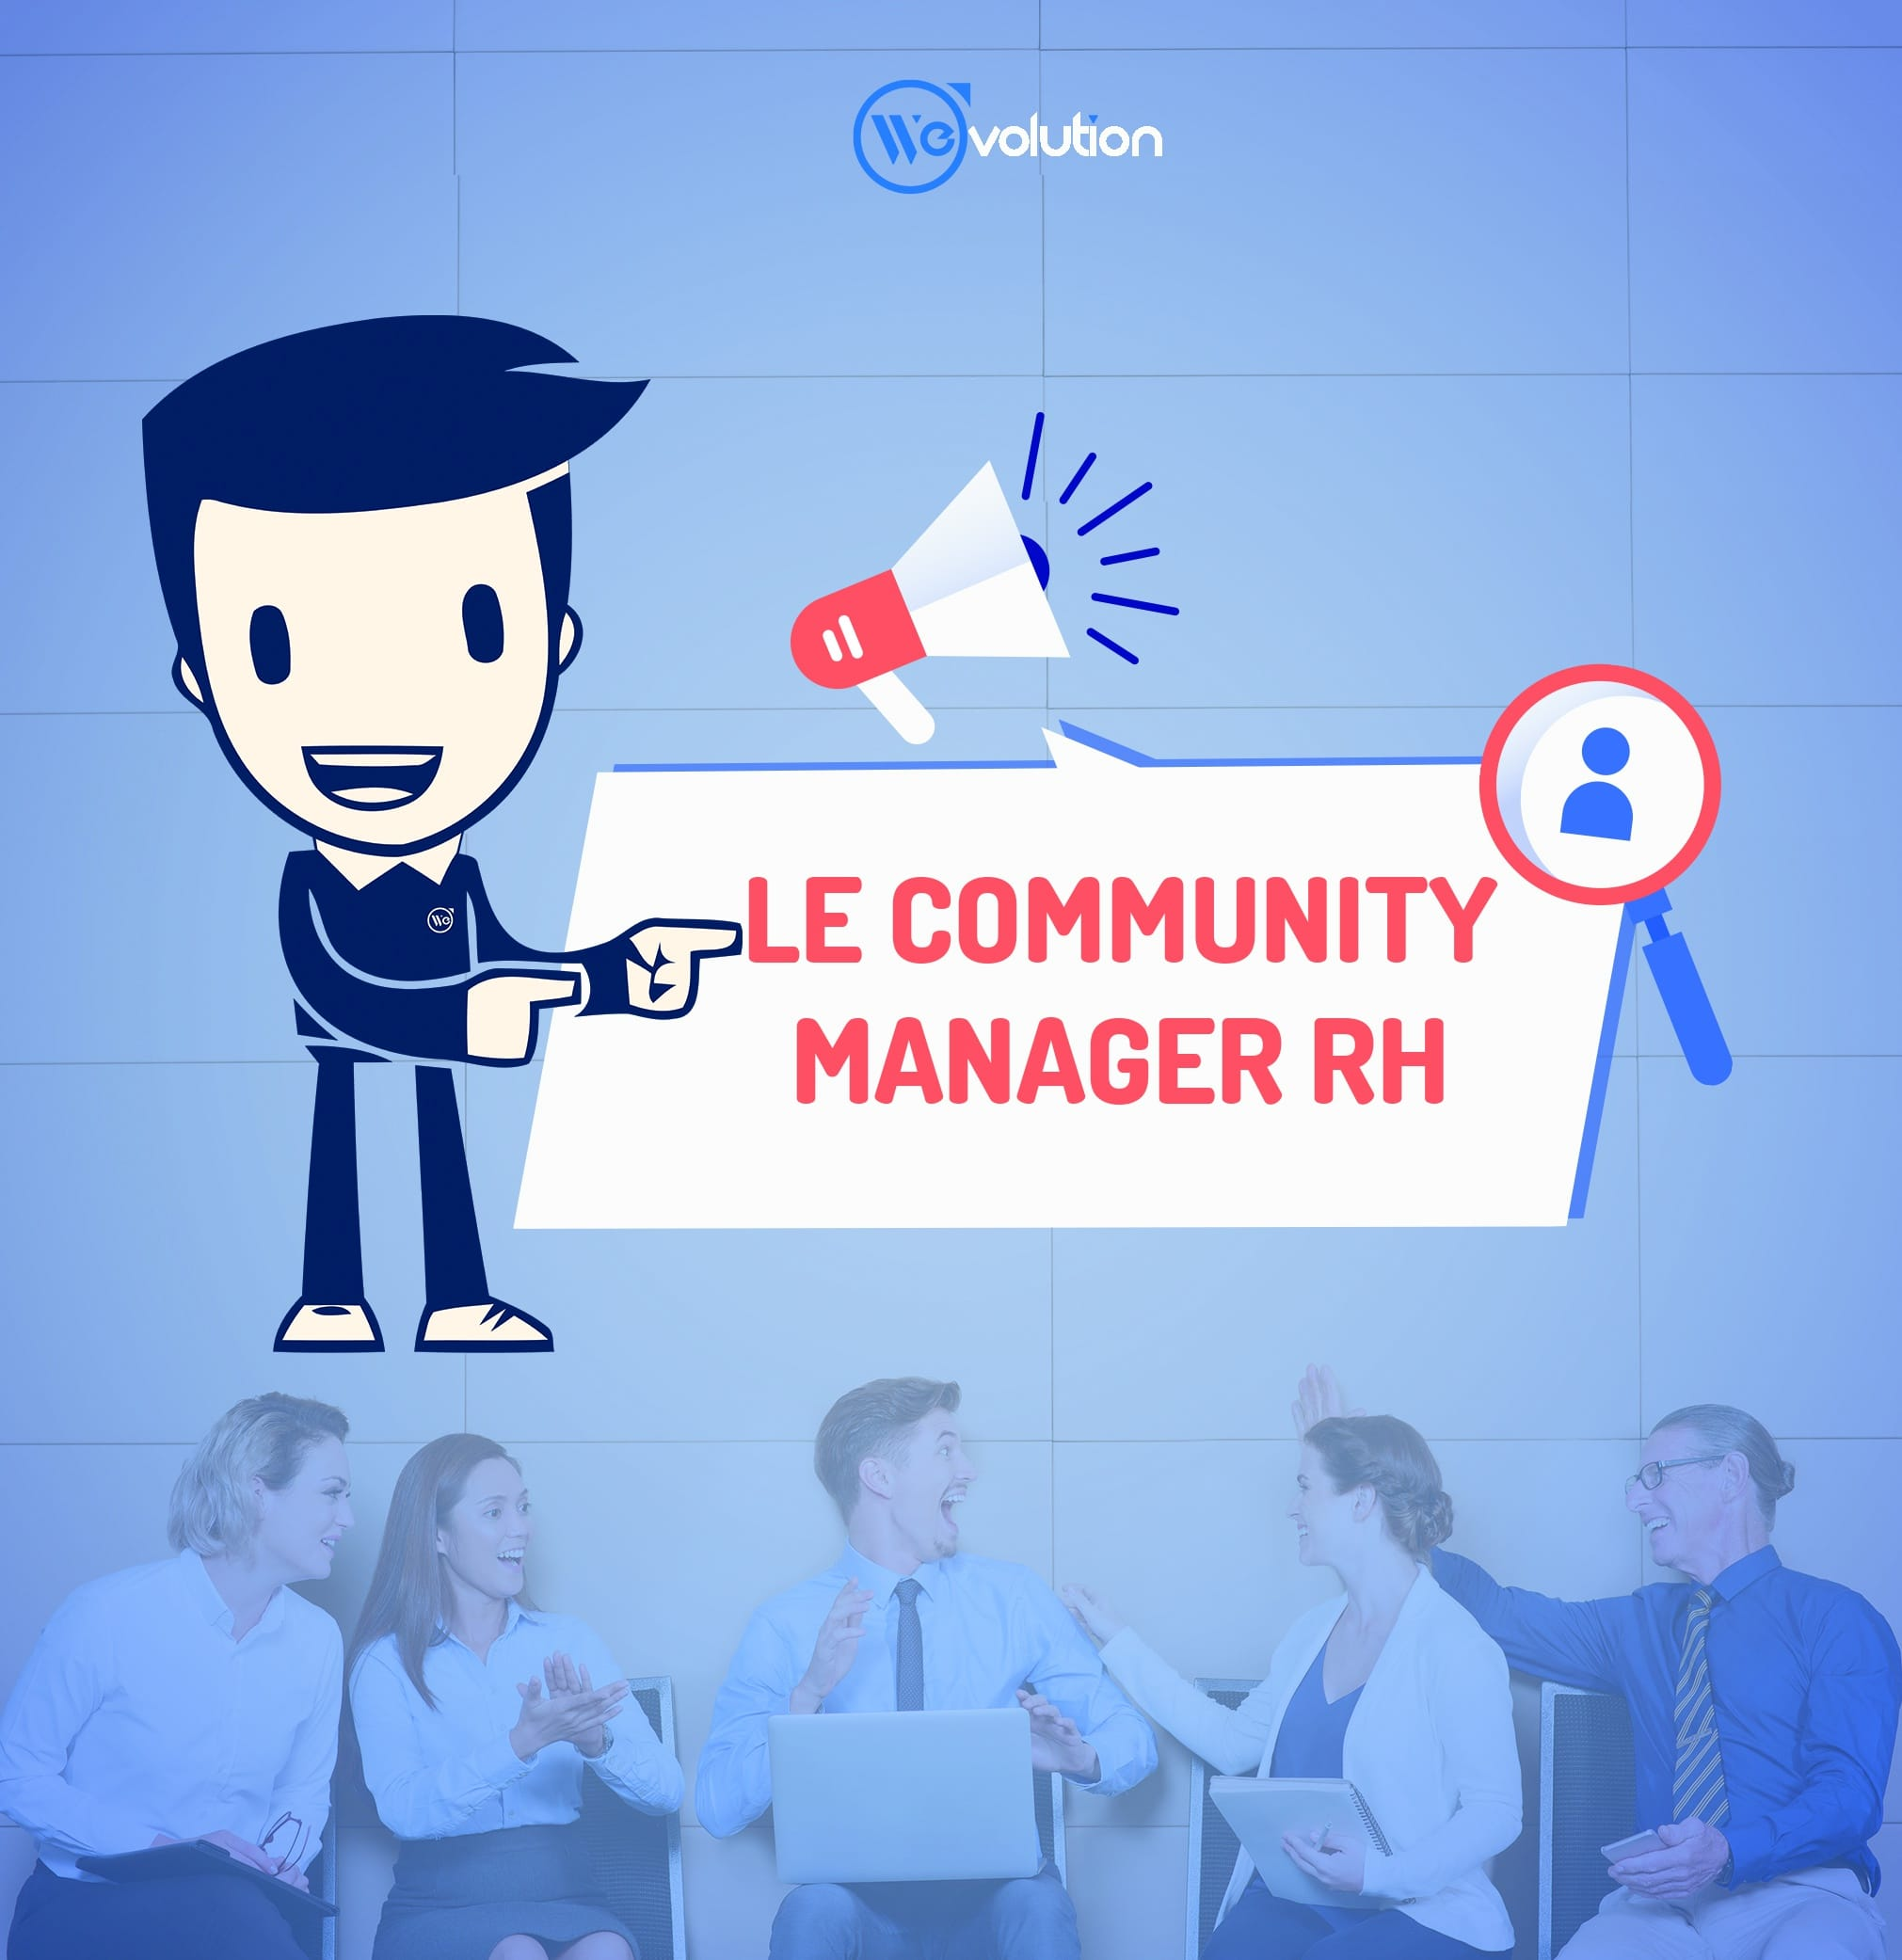 Le Community Manager RH